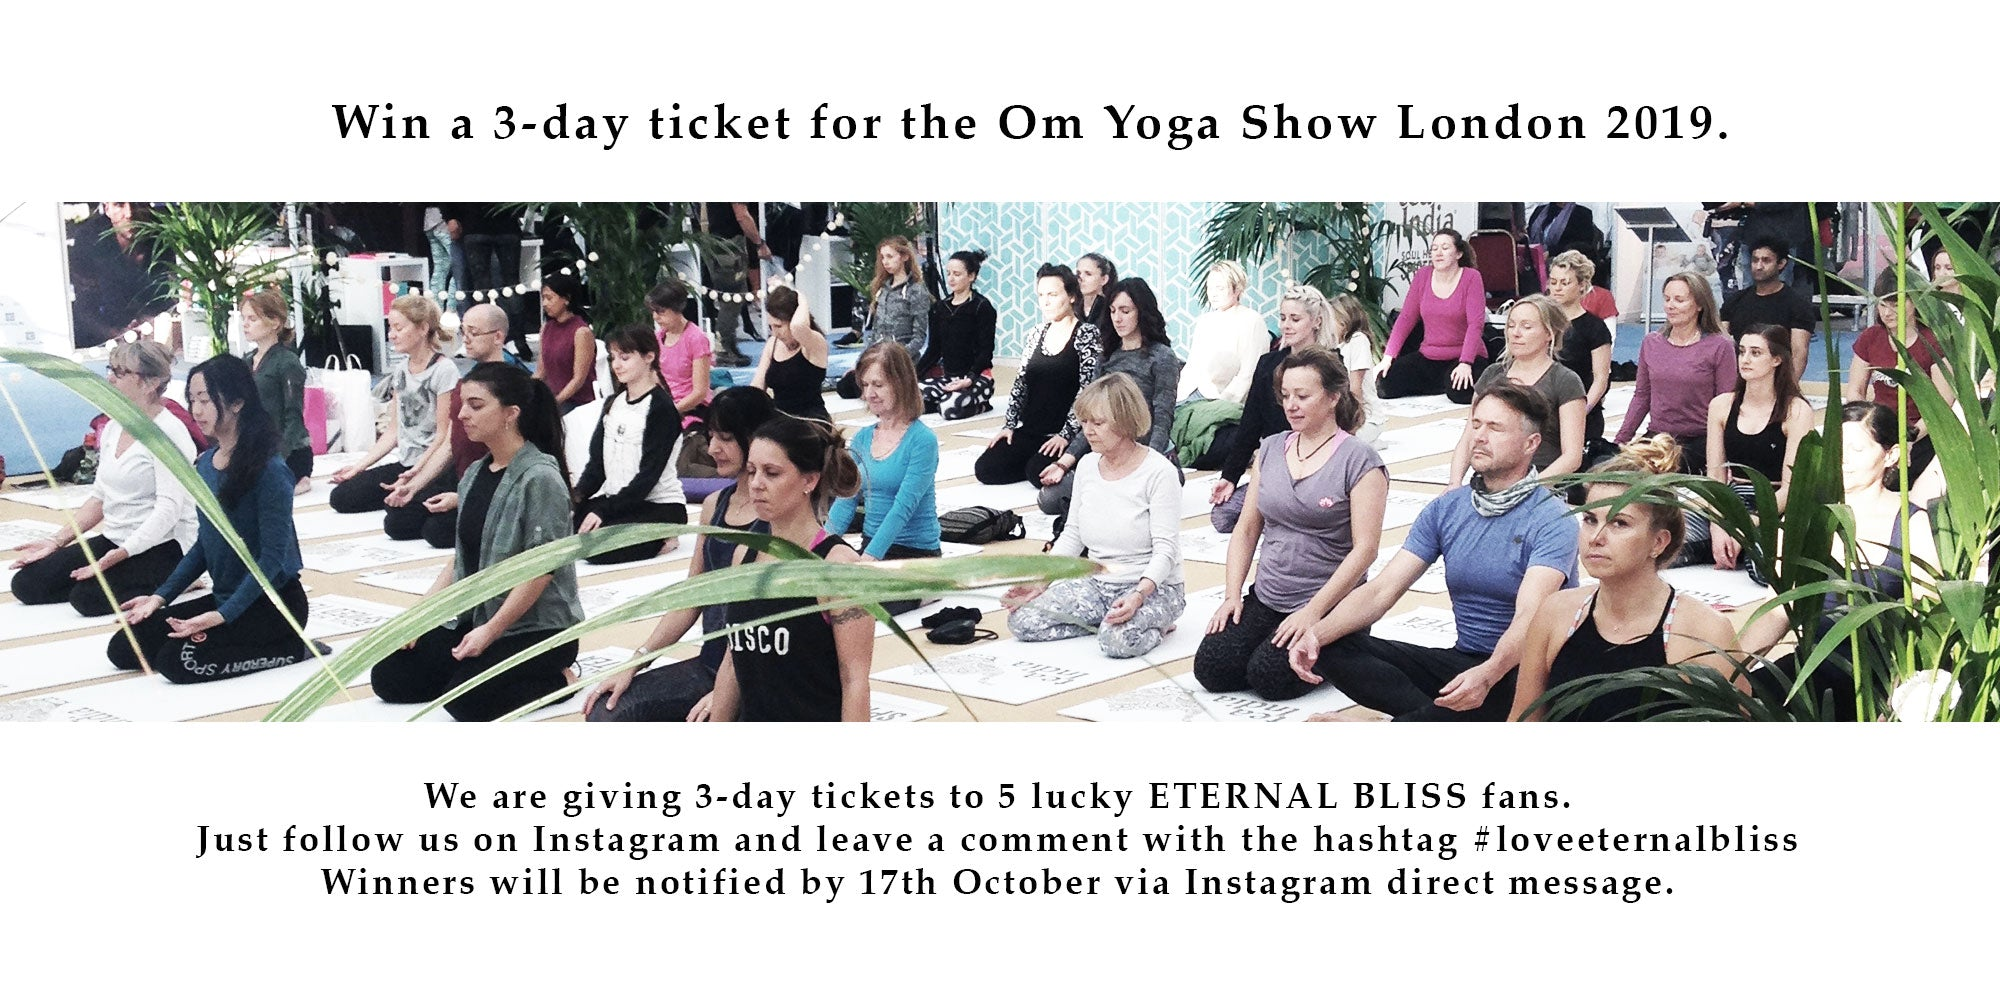 Win a 3-day ticket for the OmYoga Show London 2019